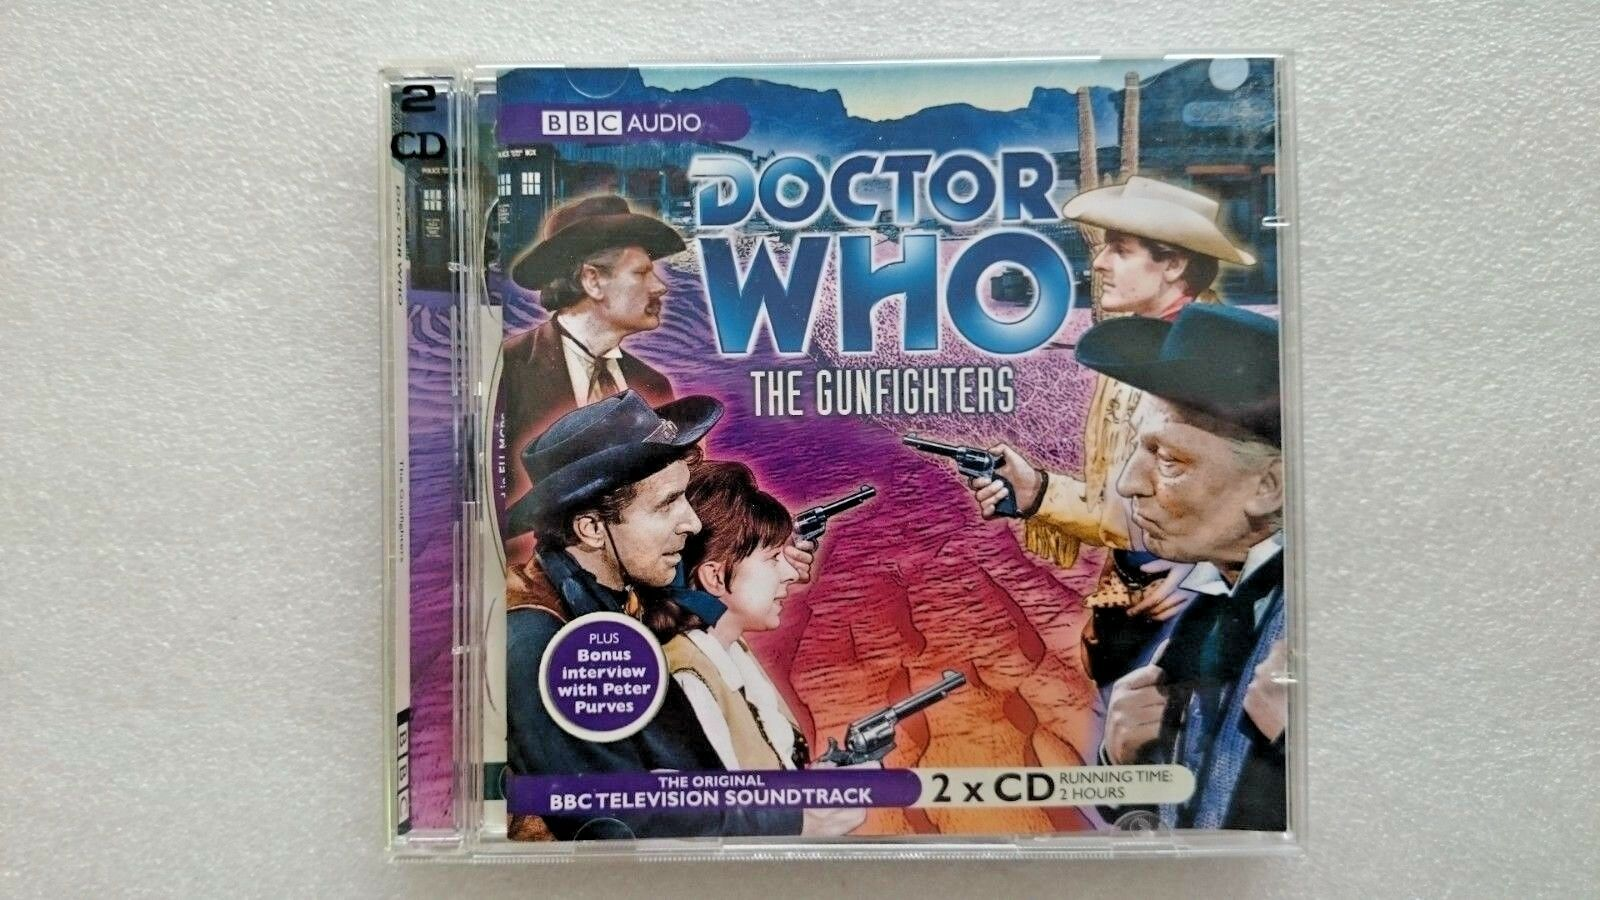 Doctor Who, the Gunfighters by Donald Cotton (CD-Audio, 2007) - William Hartnell